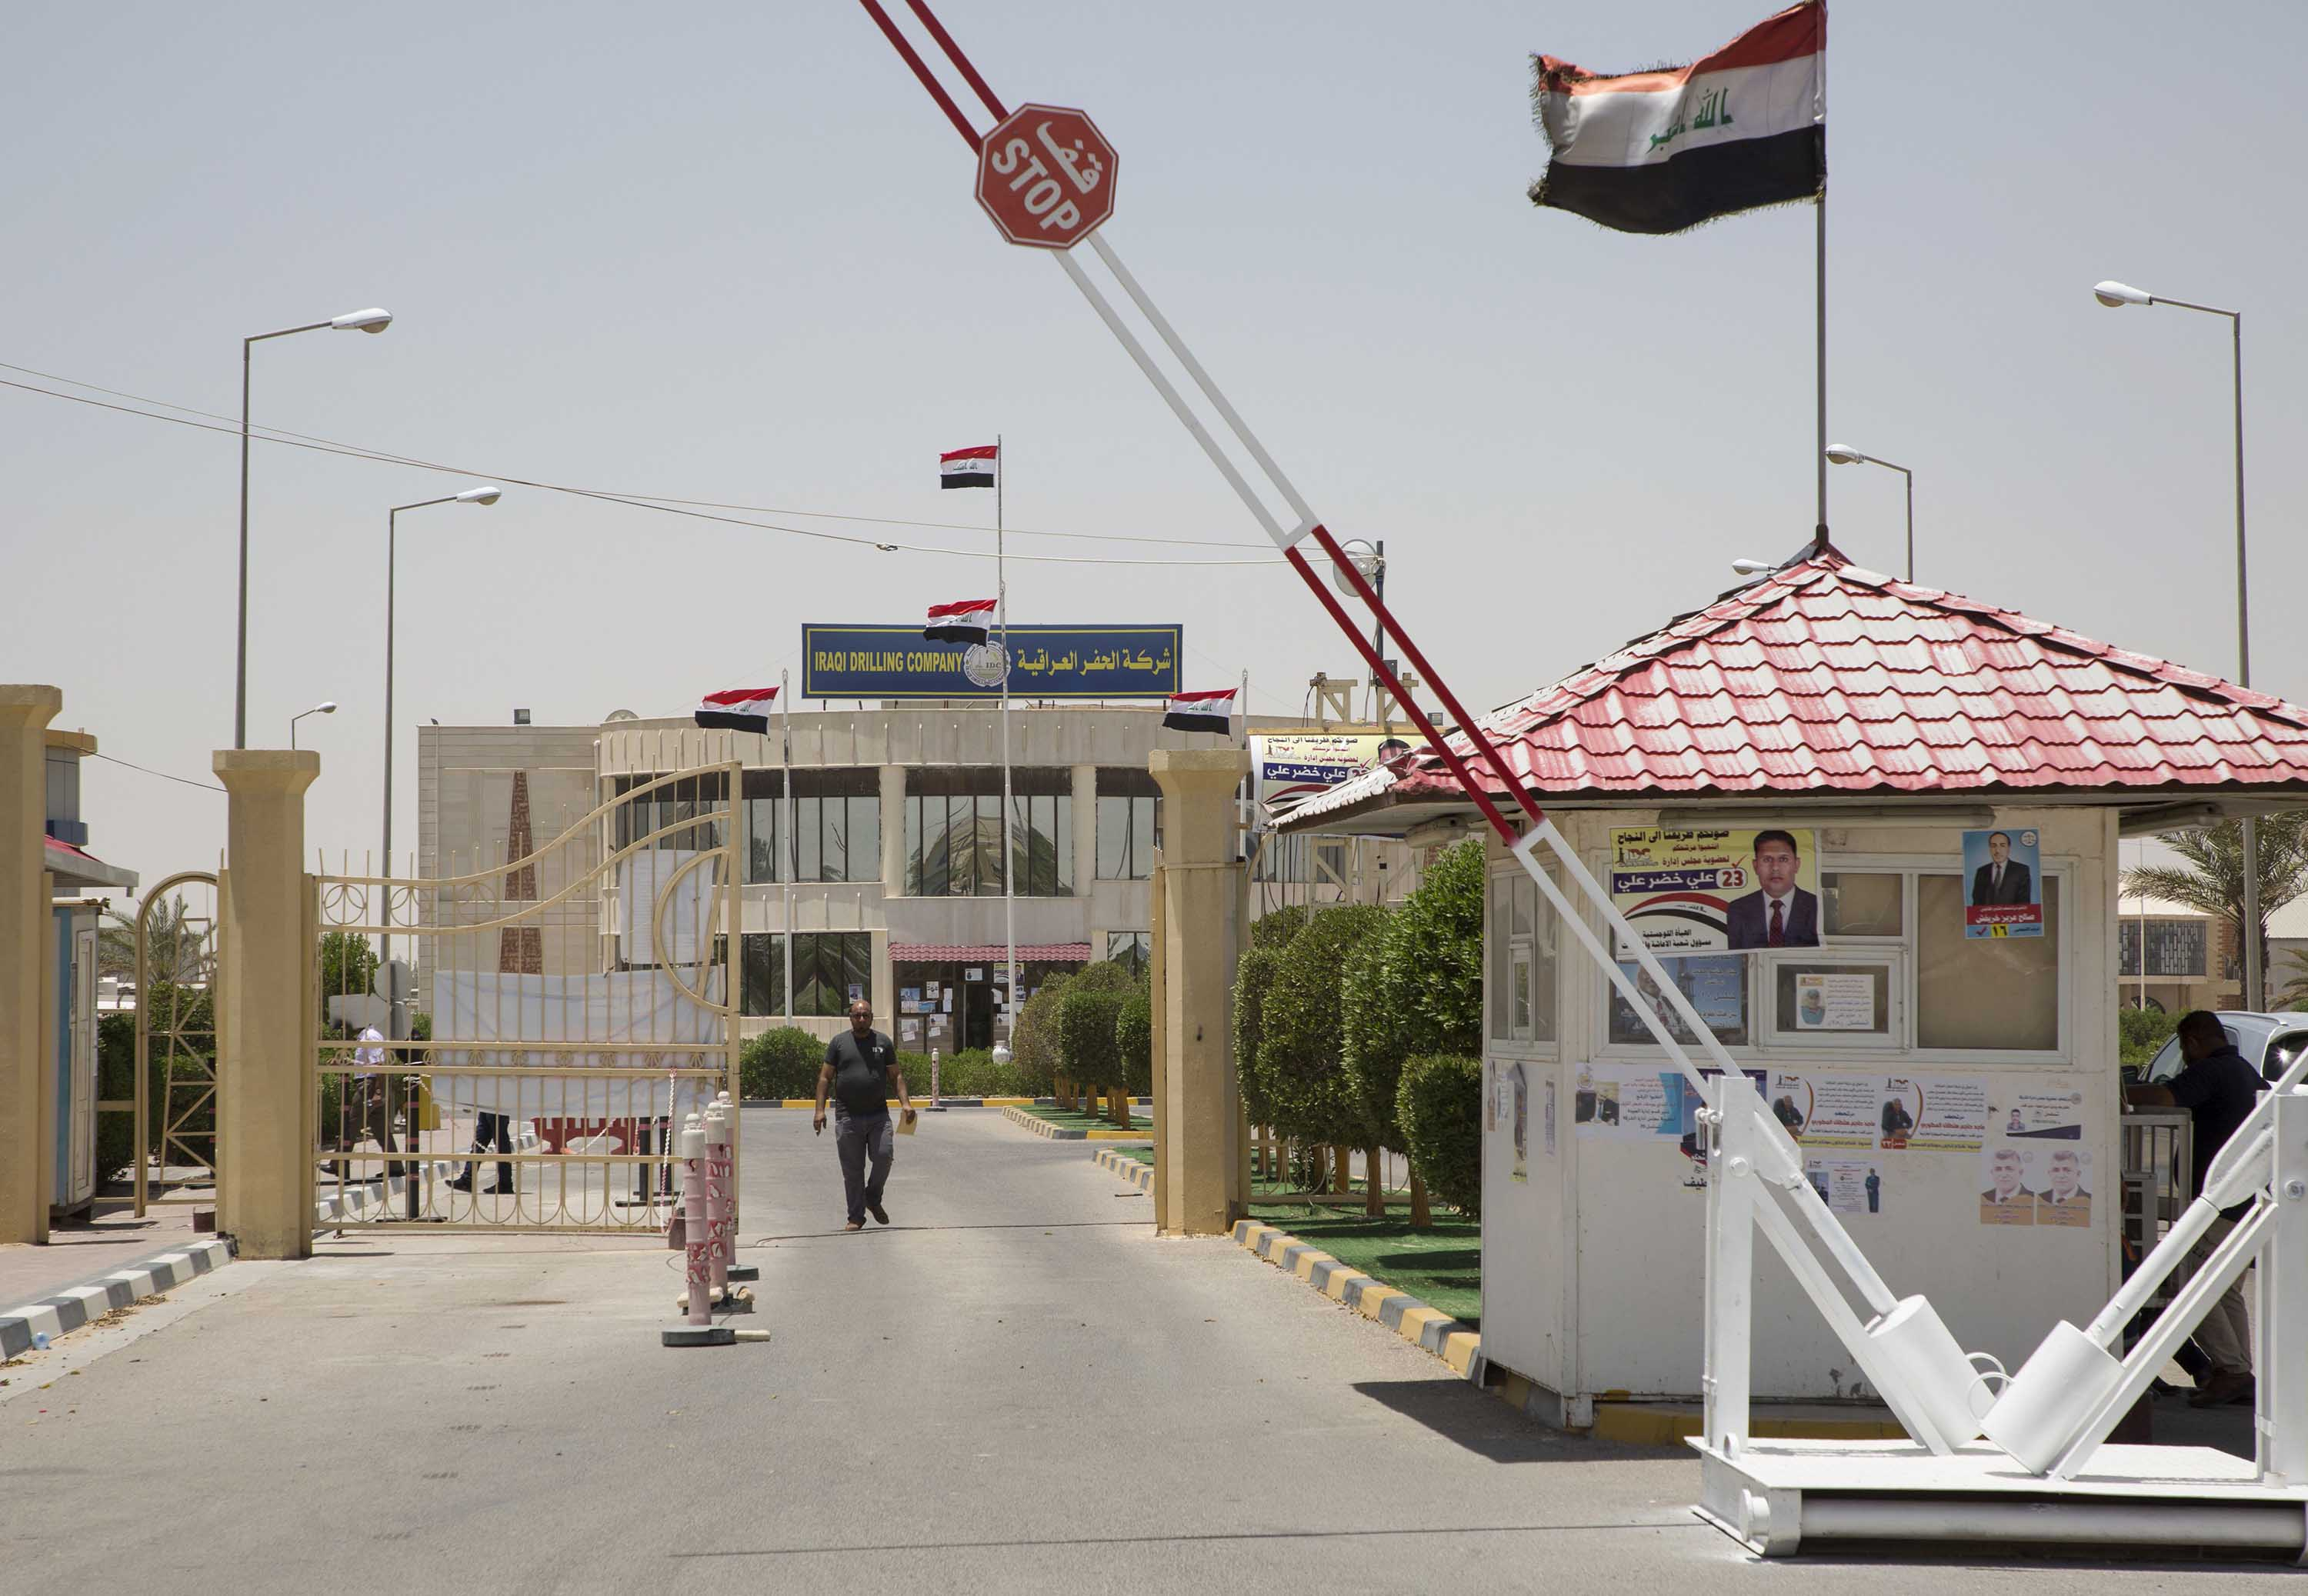 A picture taken in June 2019 shows the entrance of Zubair oilfield, north of Basra, Iraq, in a key oil-producing region which hosts Iraqi and foreign companies, including US company Exxon Mobil. Credit: Hussein Faleh/AFP via Getty Images